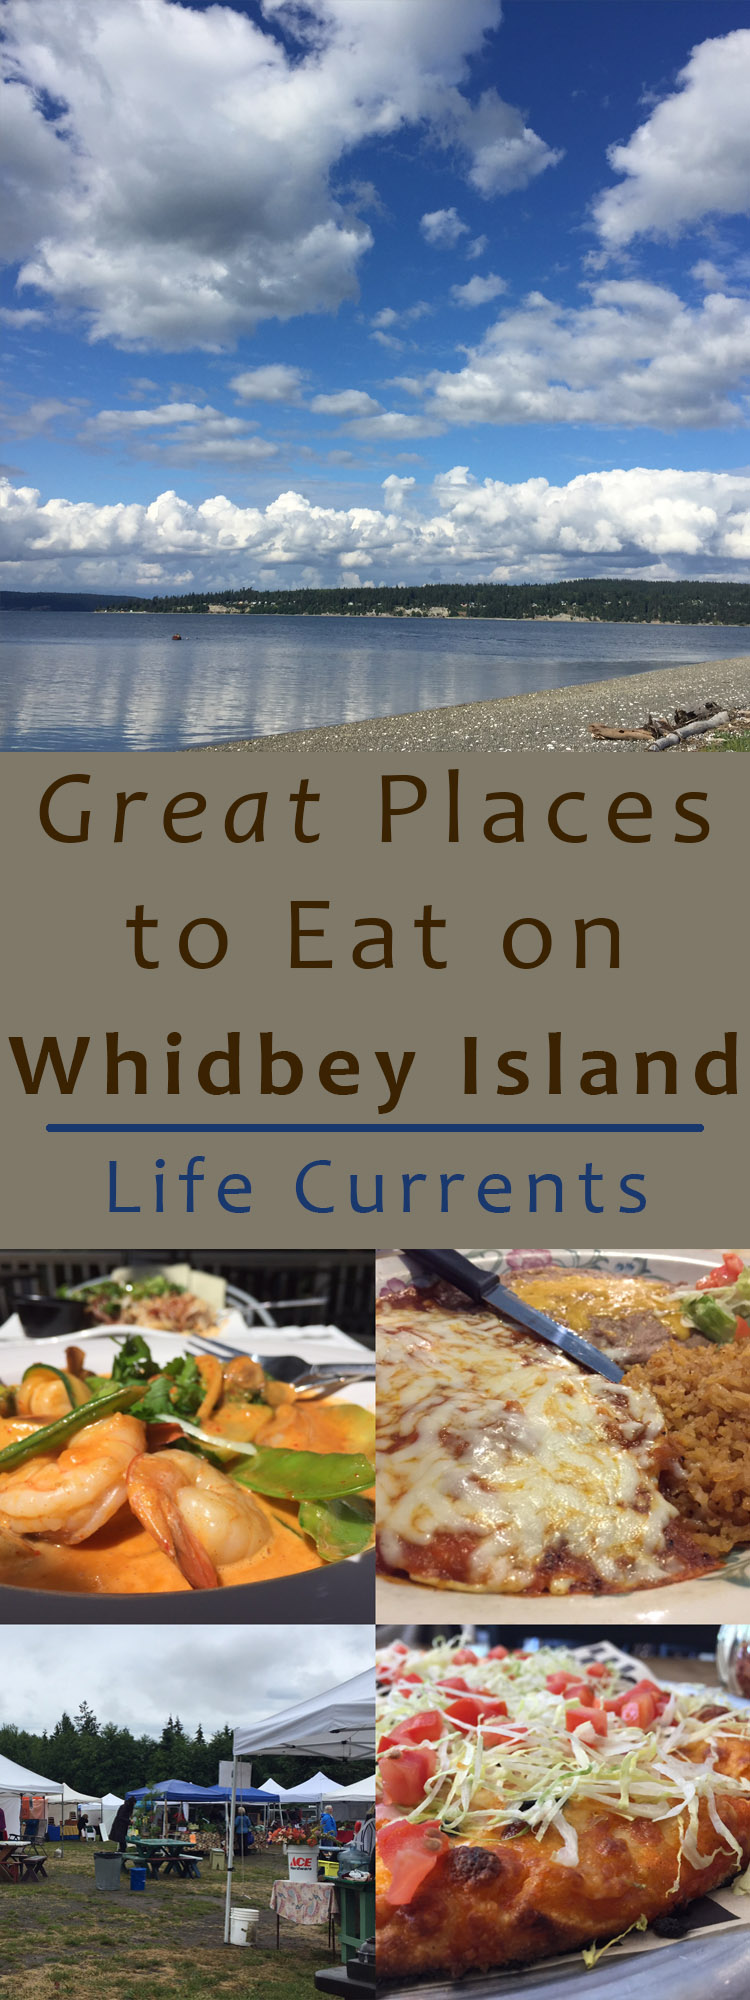 Great Places to Eat on whidbey Island! wheather you're here for the weekend or for the summer, give these places a try!